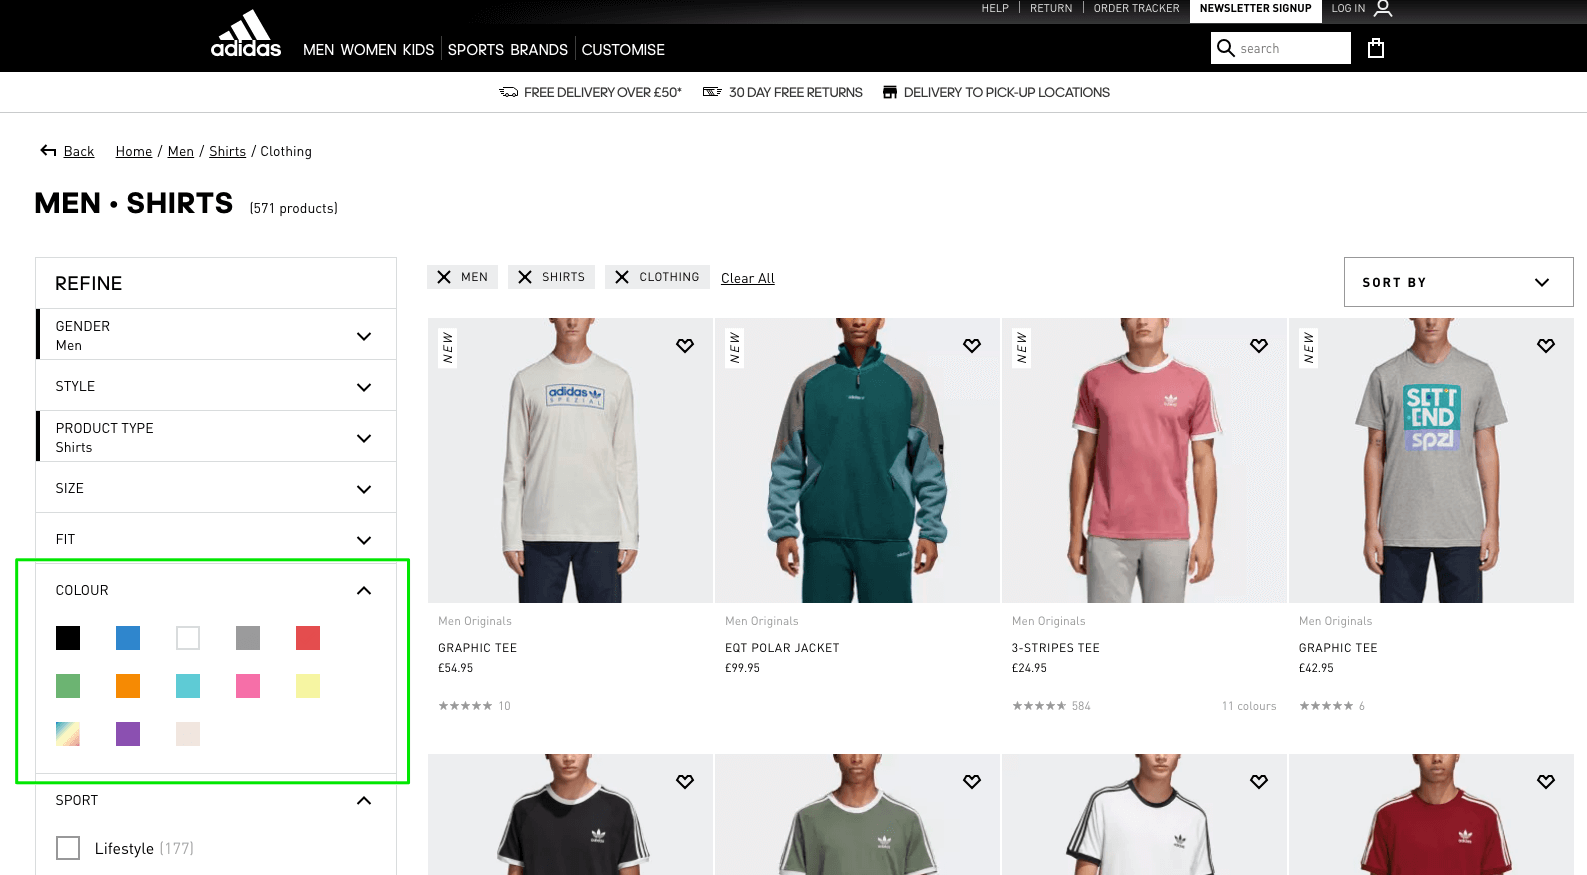 Available colors of clothes shown on Adidas online store product listing